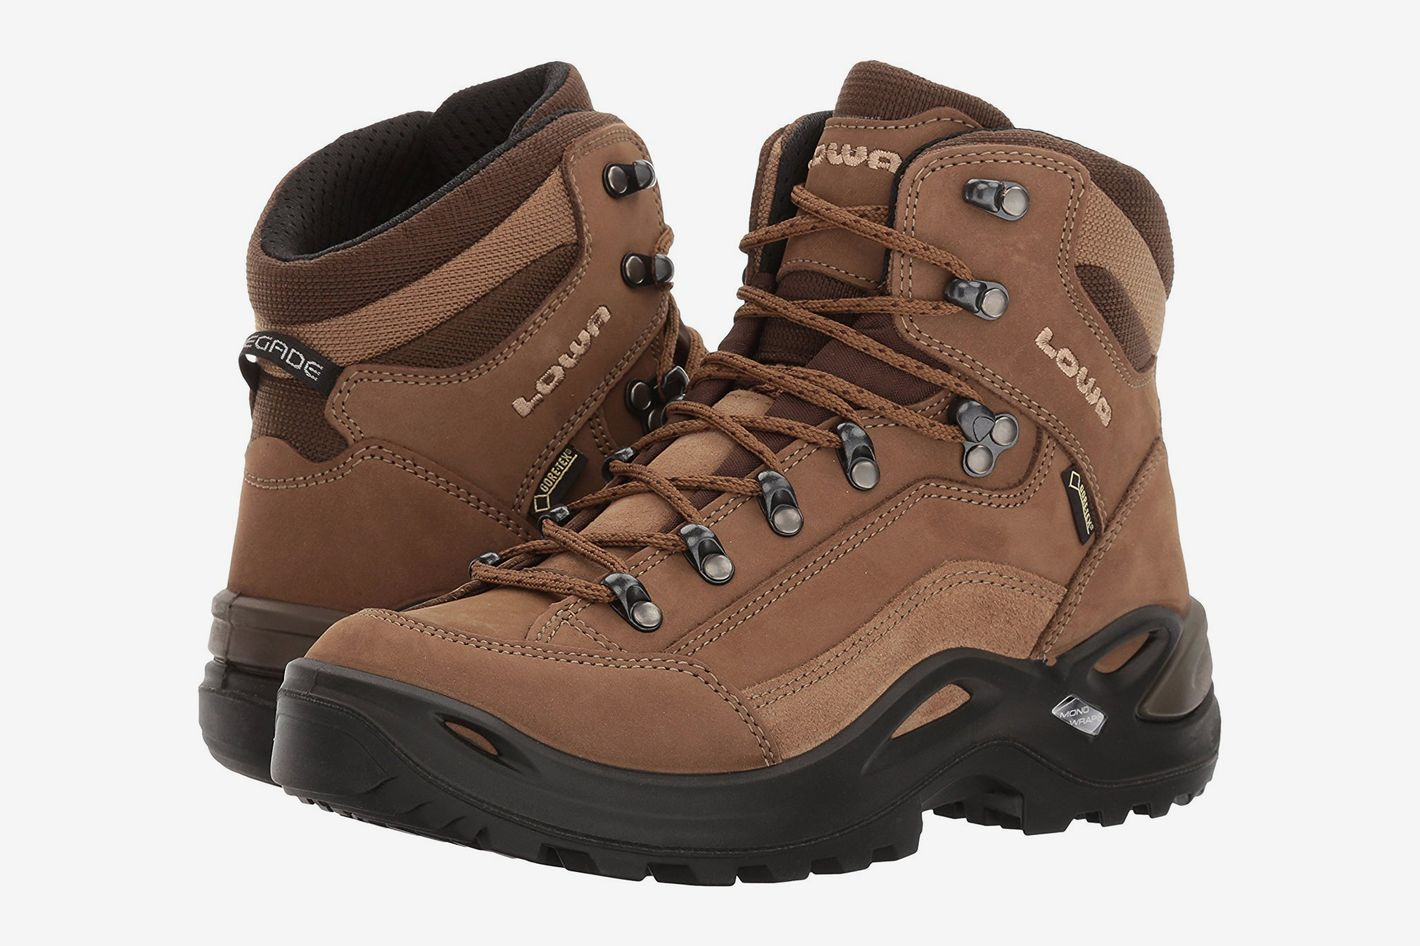 Best Hiking Boots And Shoes